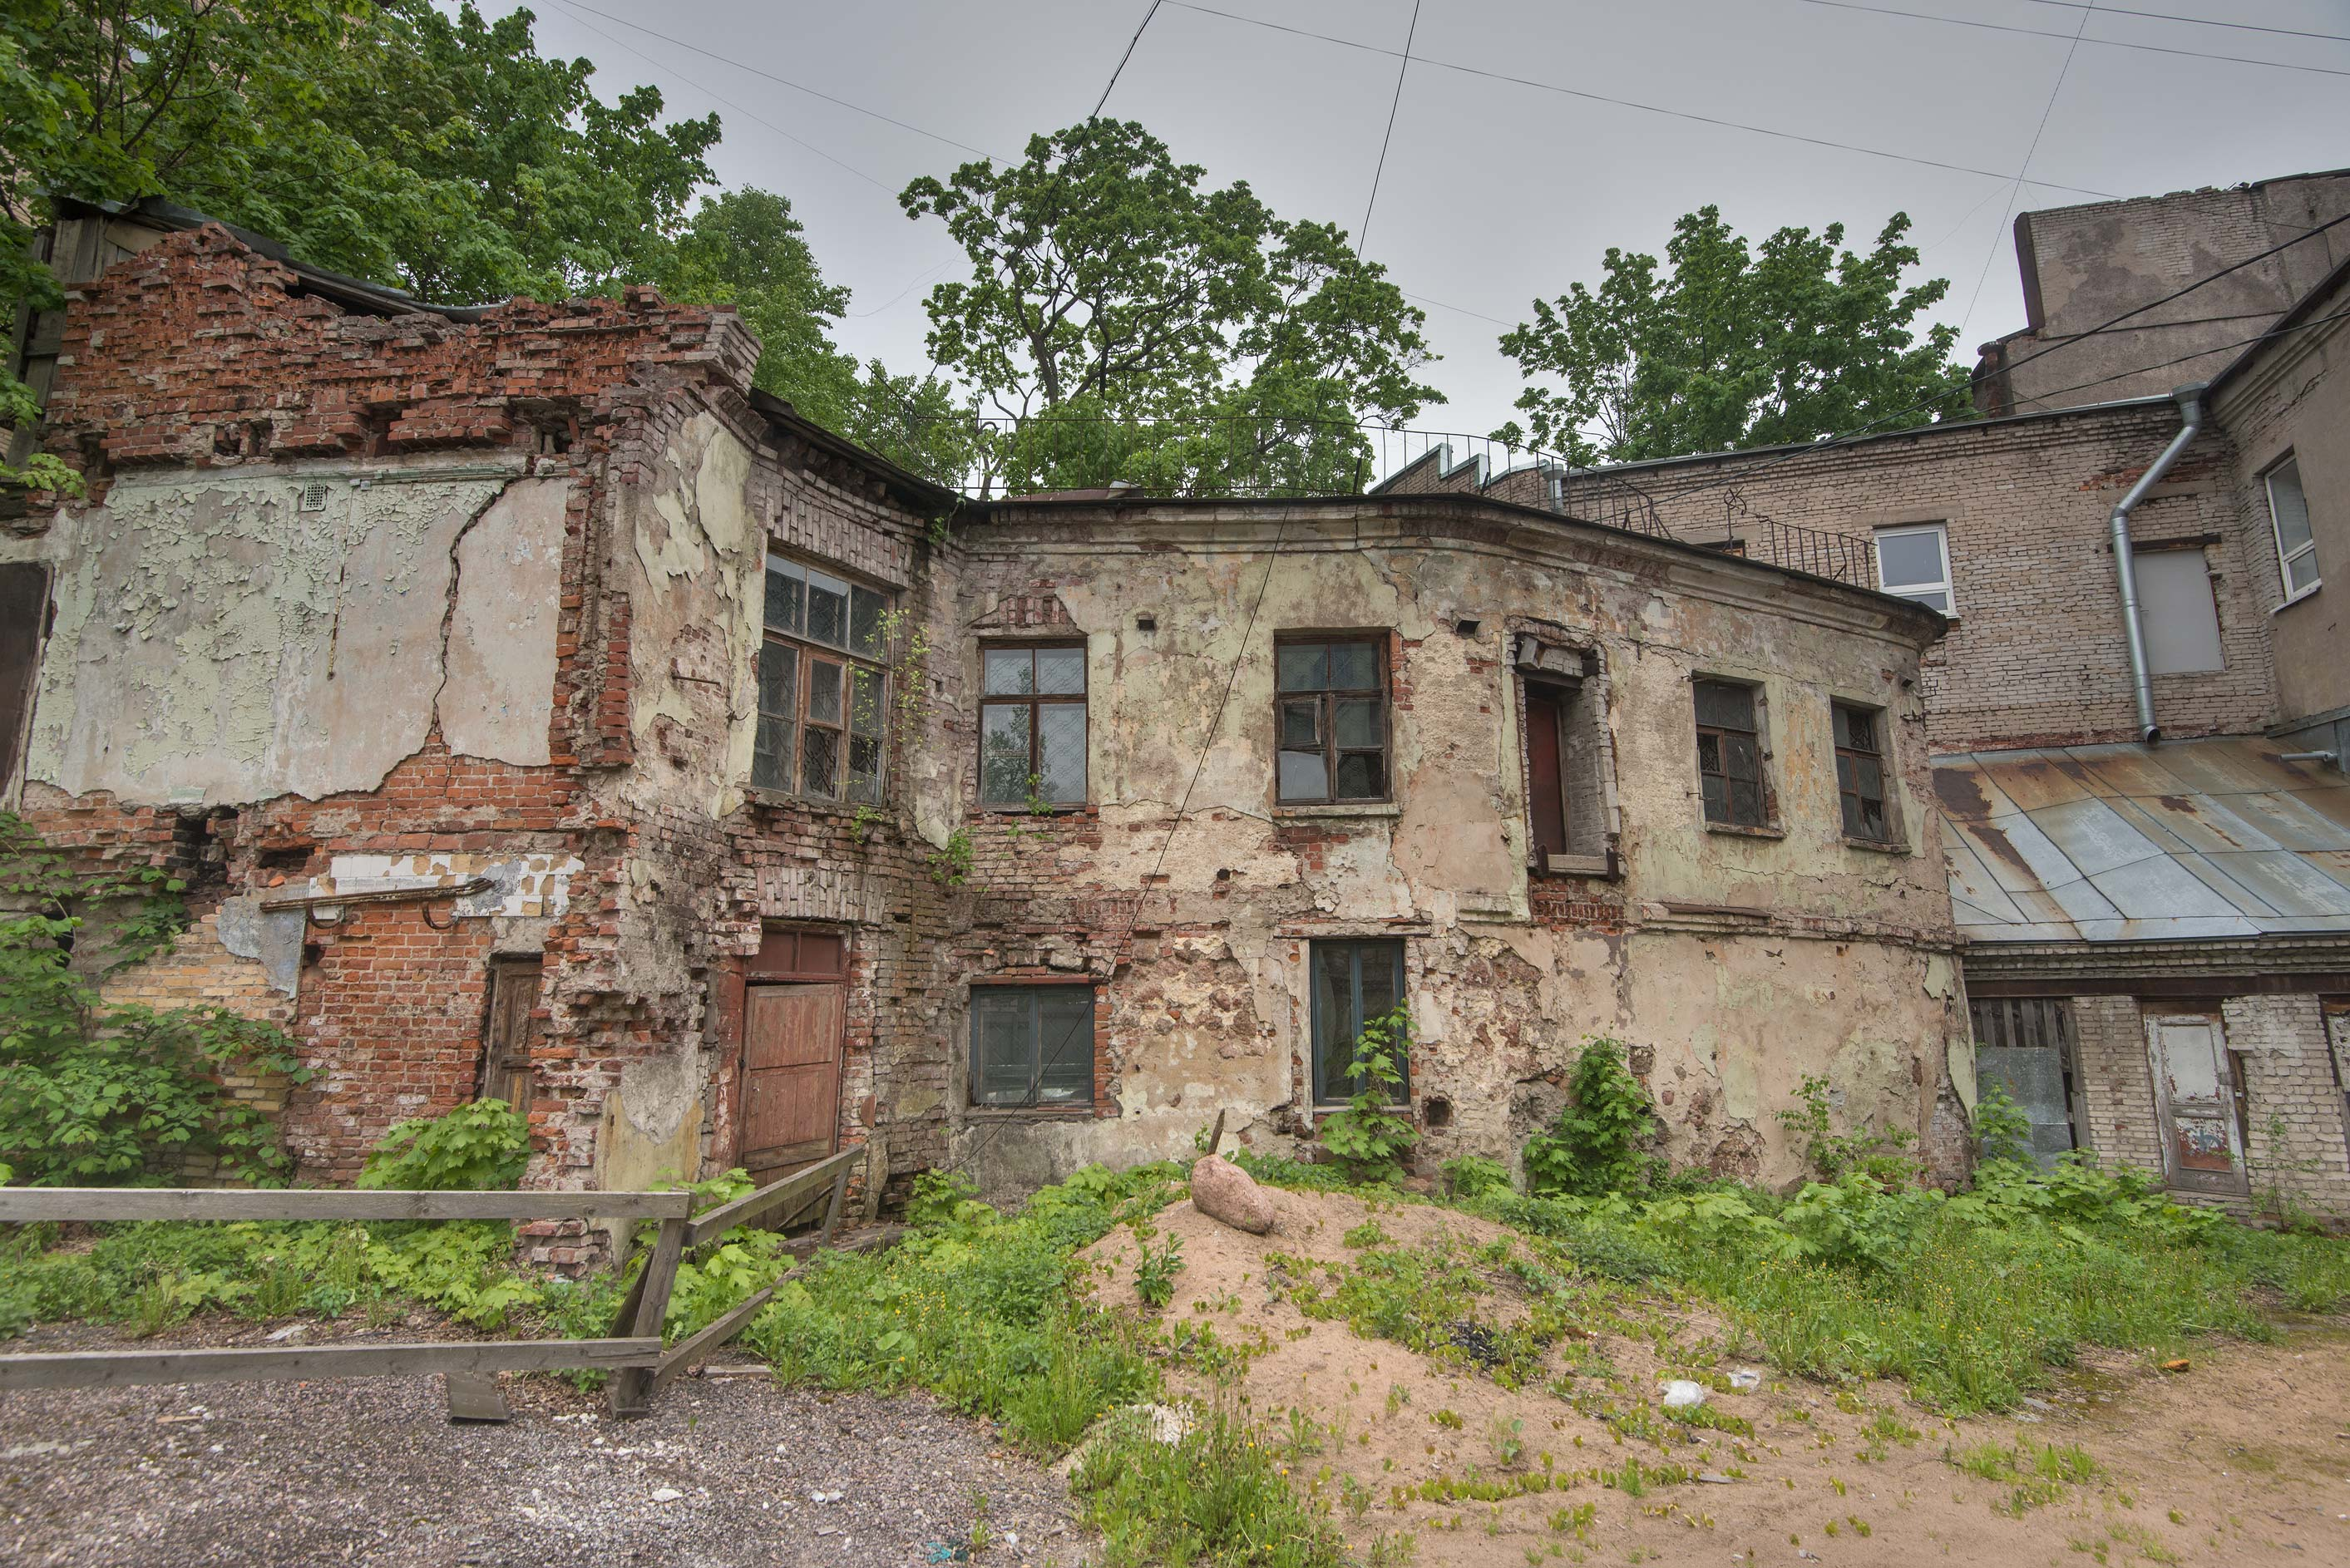 Brick ruins at Bankovsky Proezd in old city of Vyborg. Russia